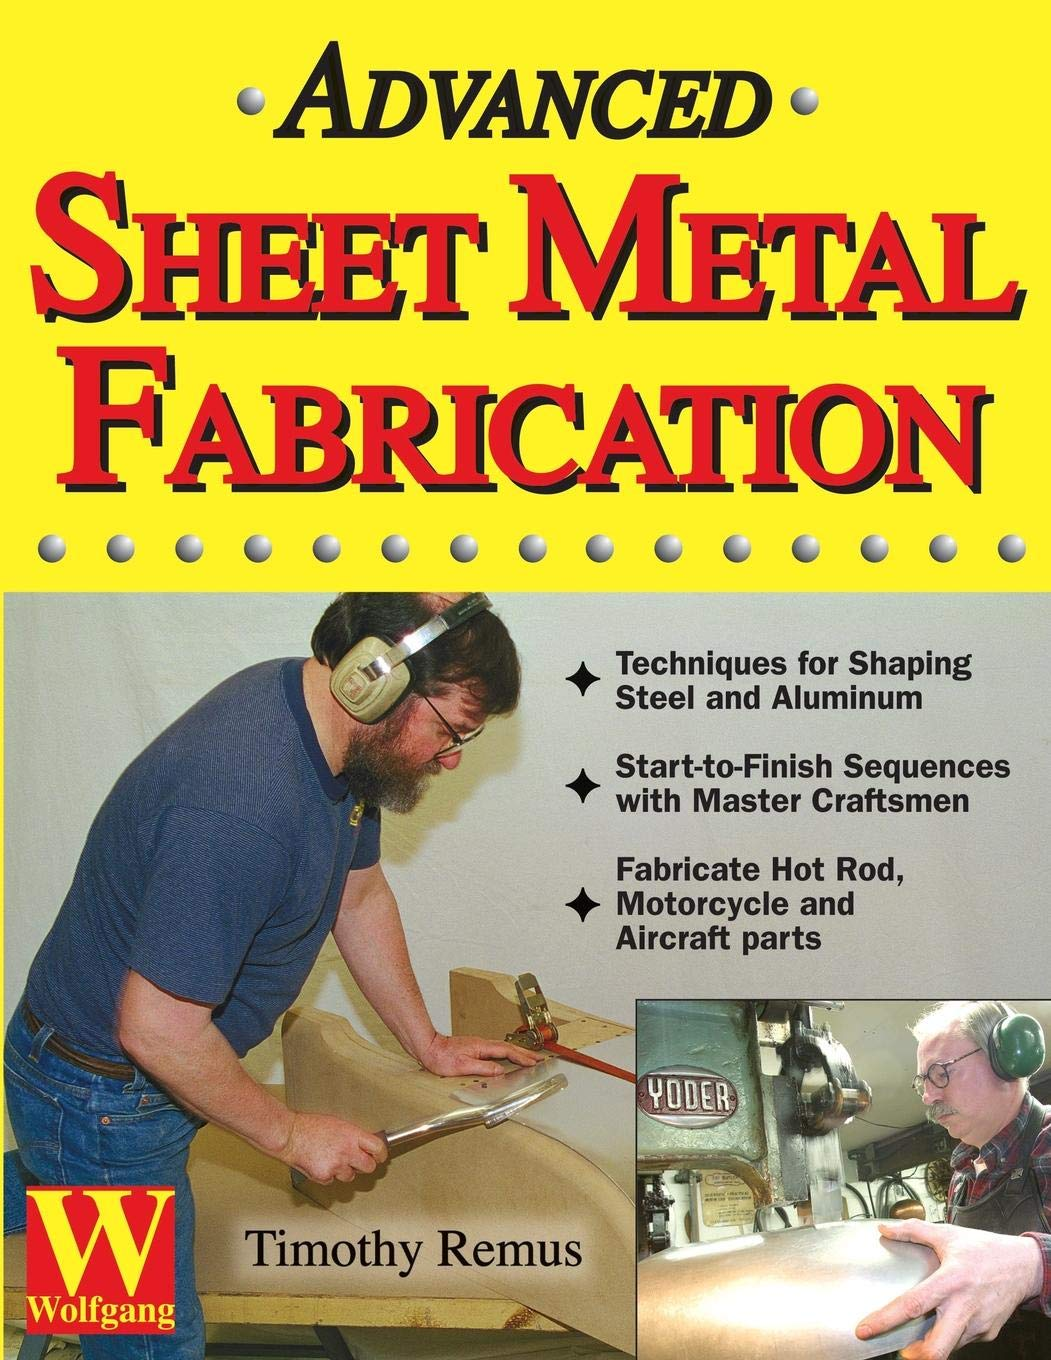 BASIC TECHNIQUES FOR WORKING WITH STEEL Covell Sheet Metal Fabrication Auto Body